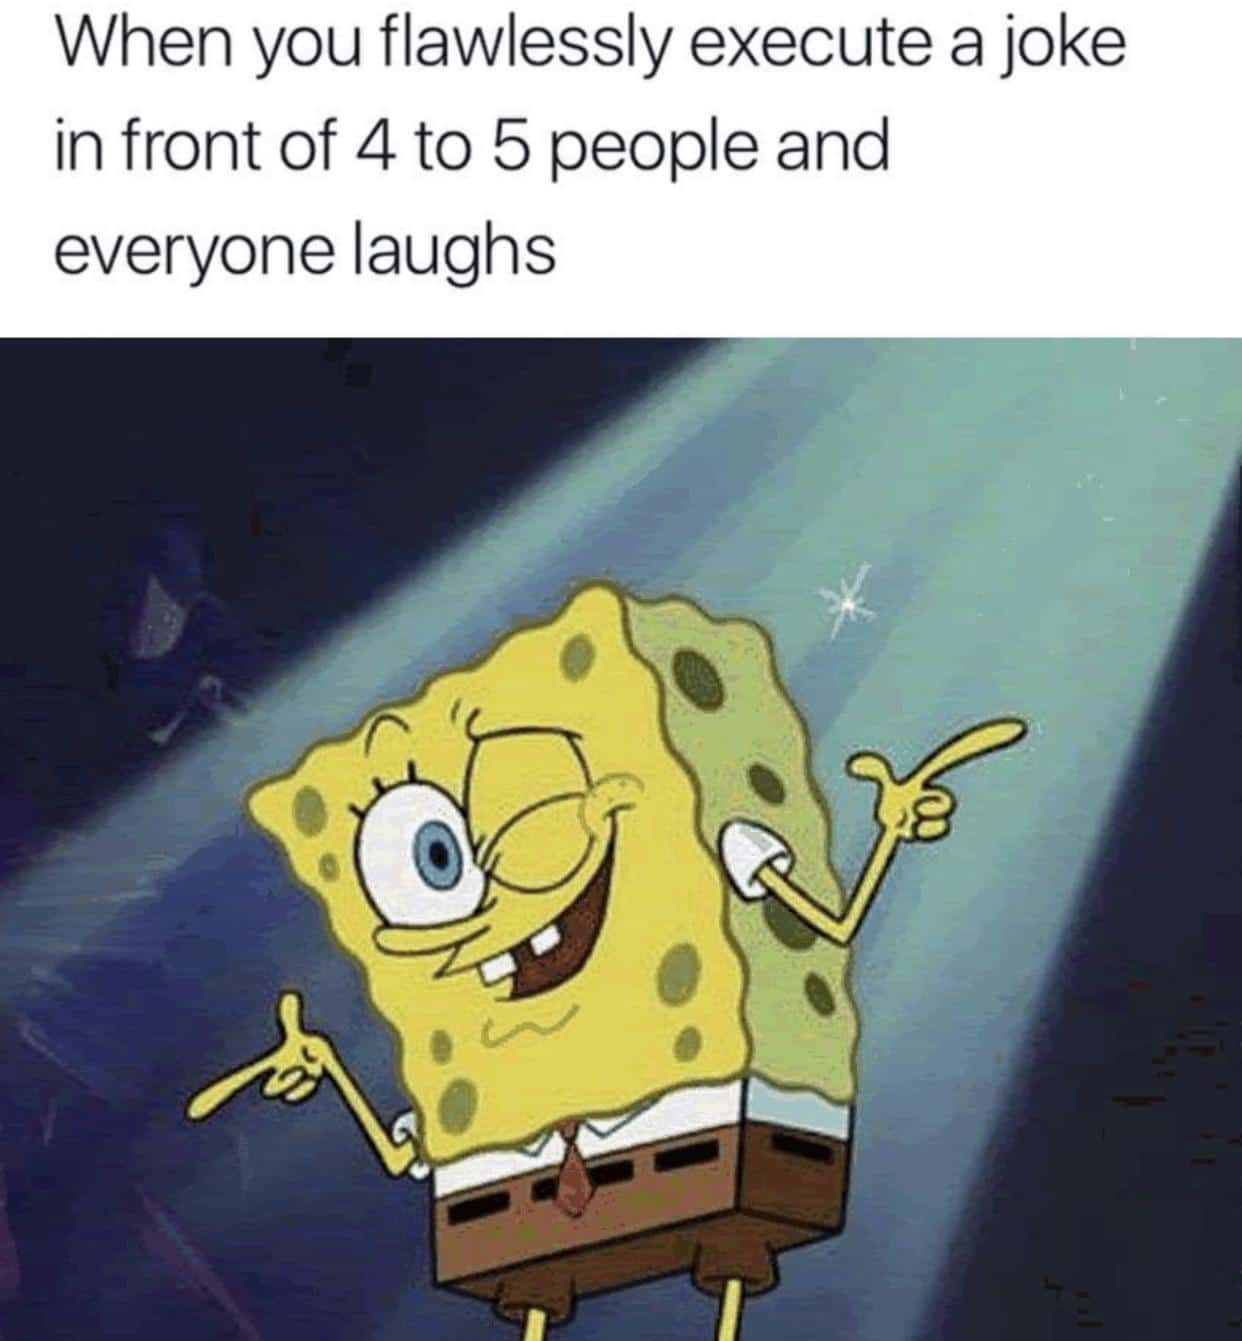 Spongebob,  Spongebob Memes Spongebob,  text: When you flawlessly execute a joke in front of 4 to 5 people and everyone laughs